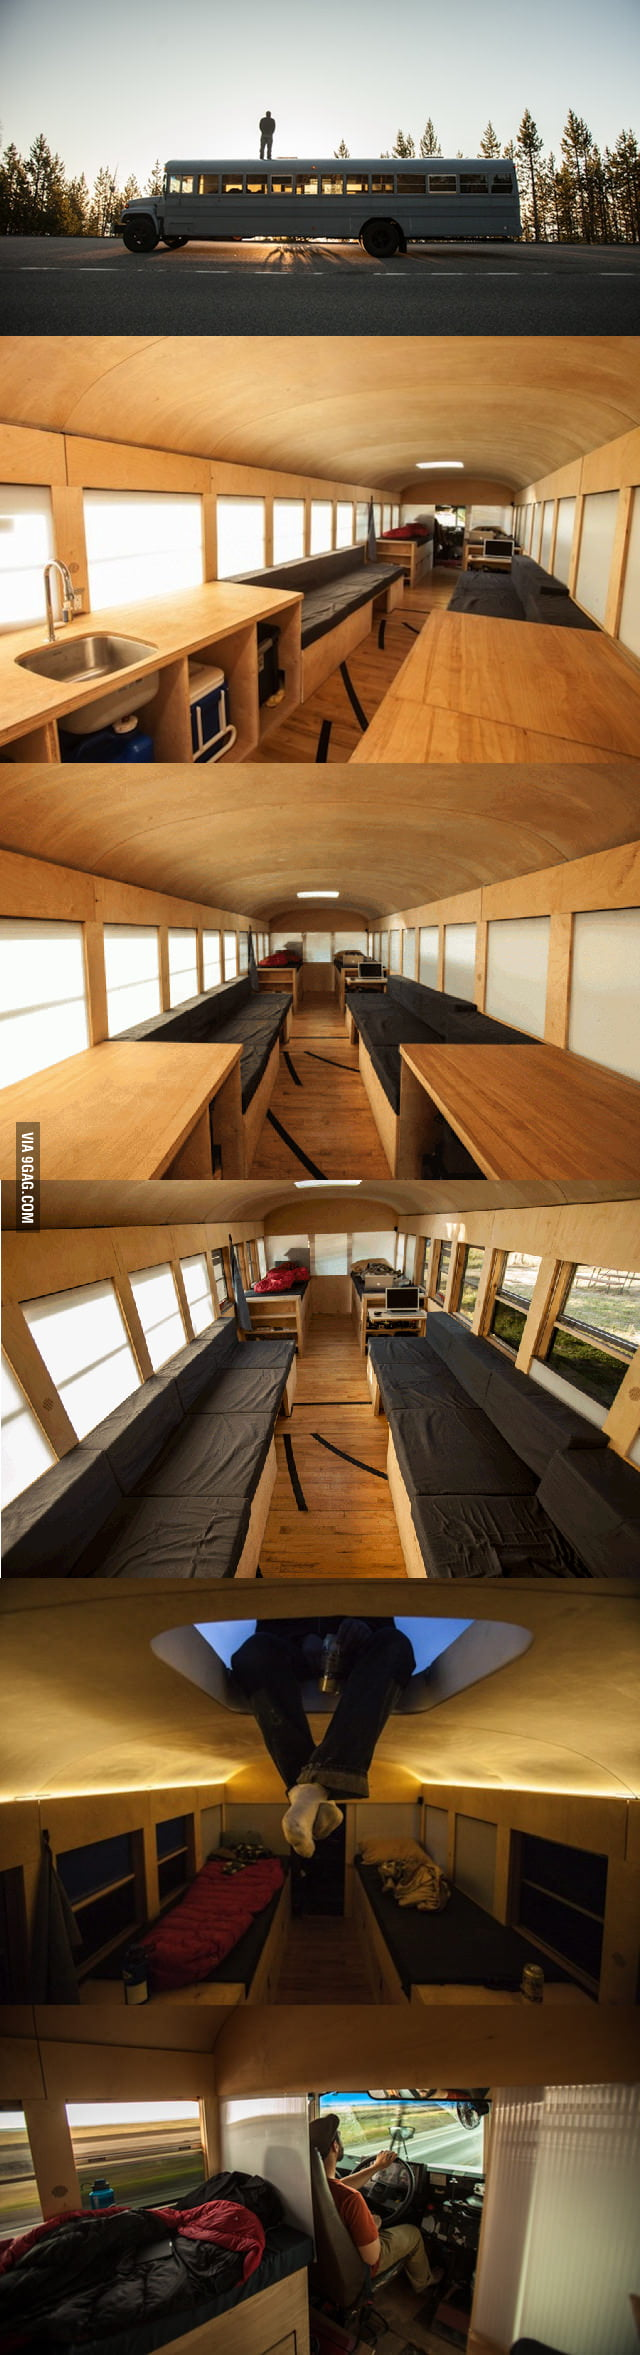 Architecture student converts school bus into cabin: Album (Story in comments)